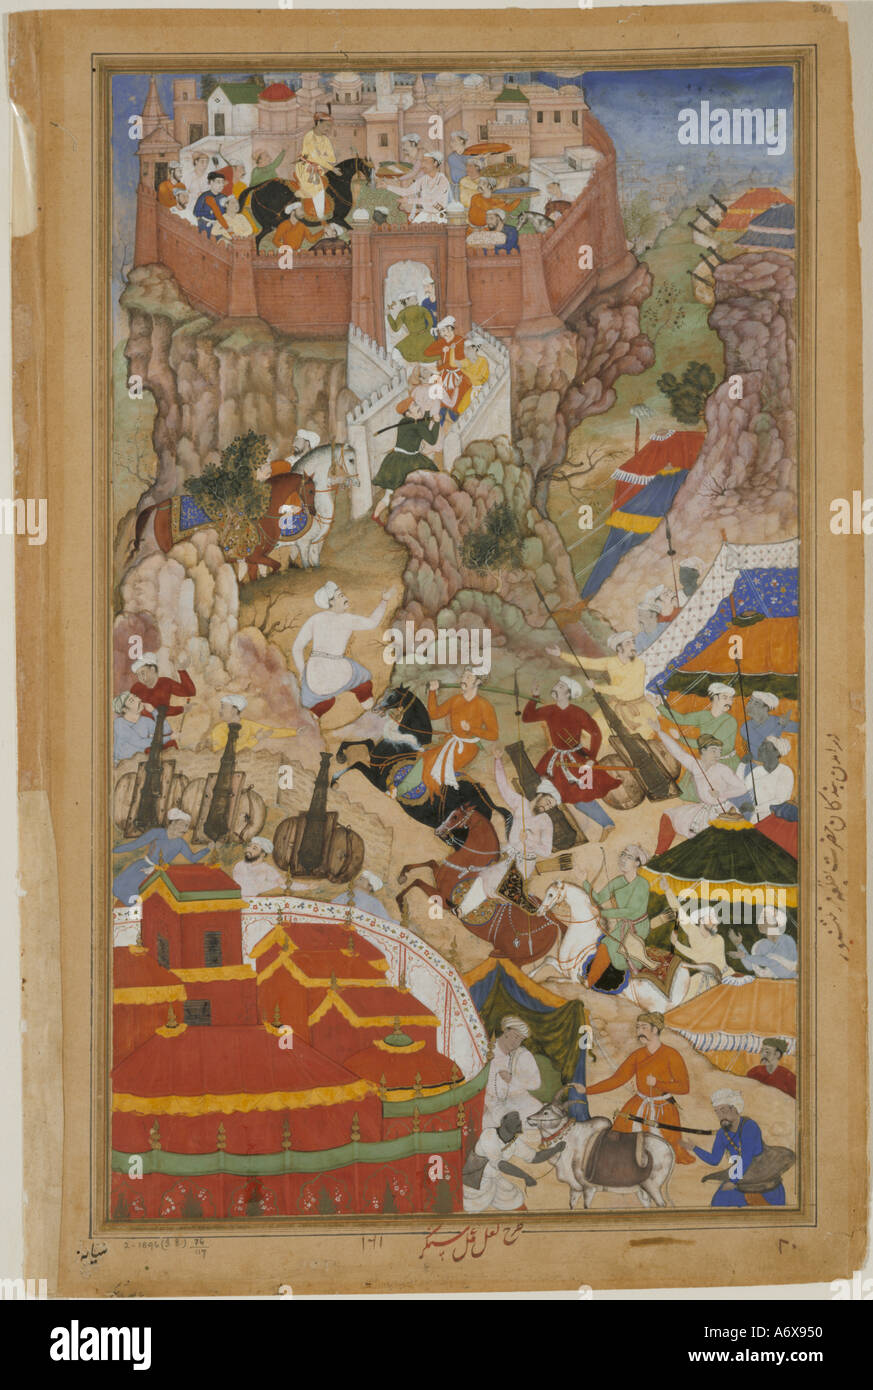 Akbar's Entry into the Fort of Ranthambhor from the Akbarnama. Mughal, India, late 16th century. - Stock Image